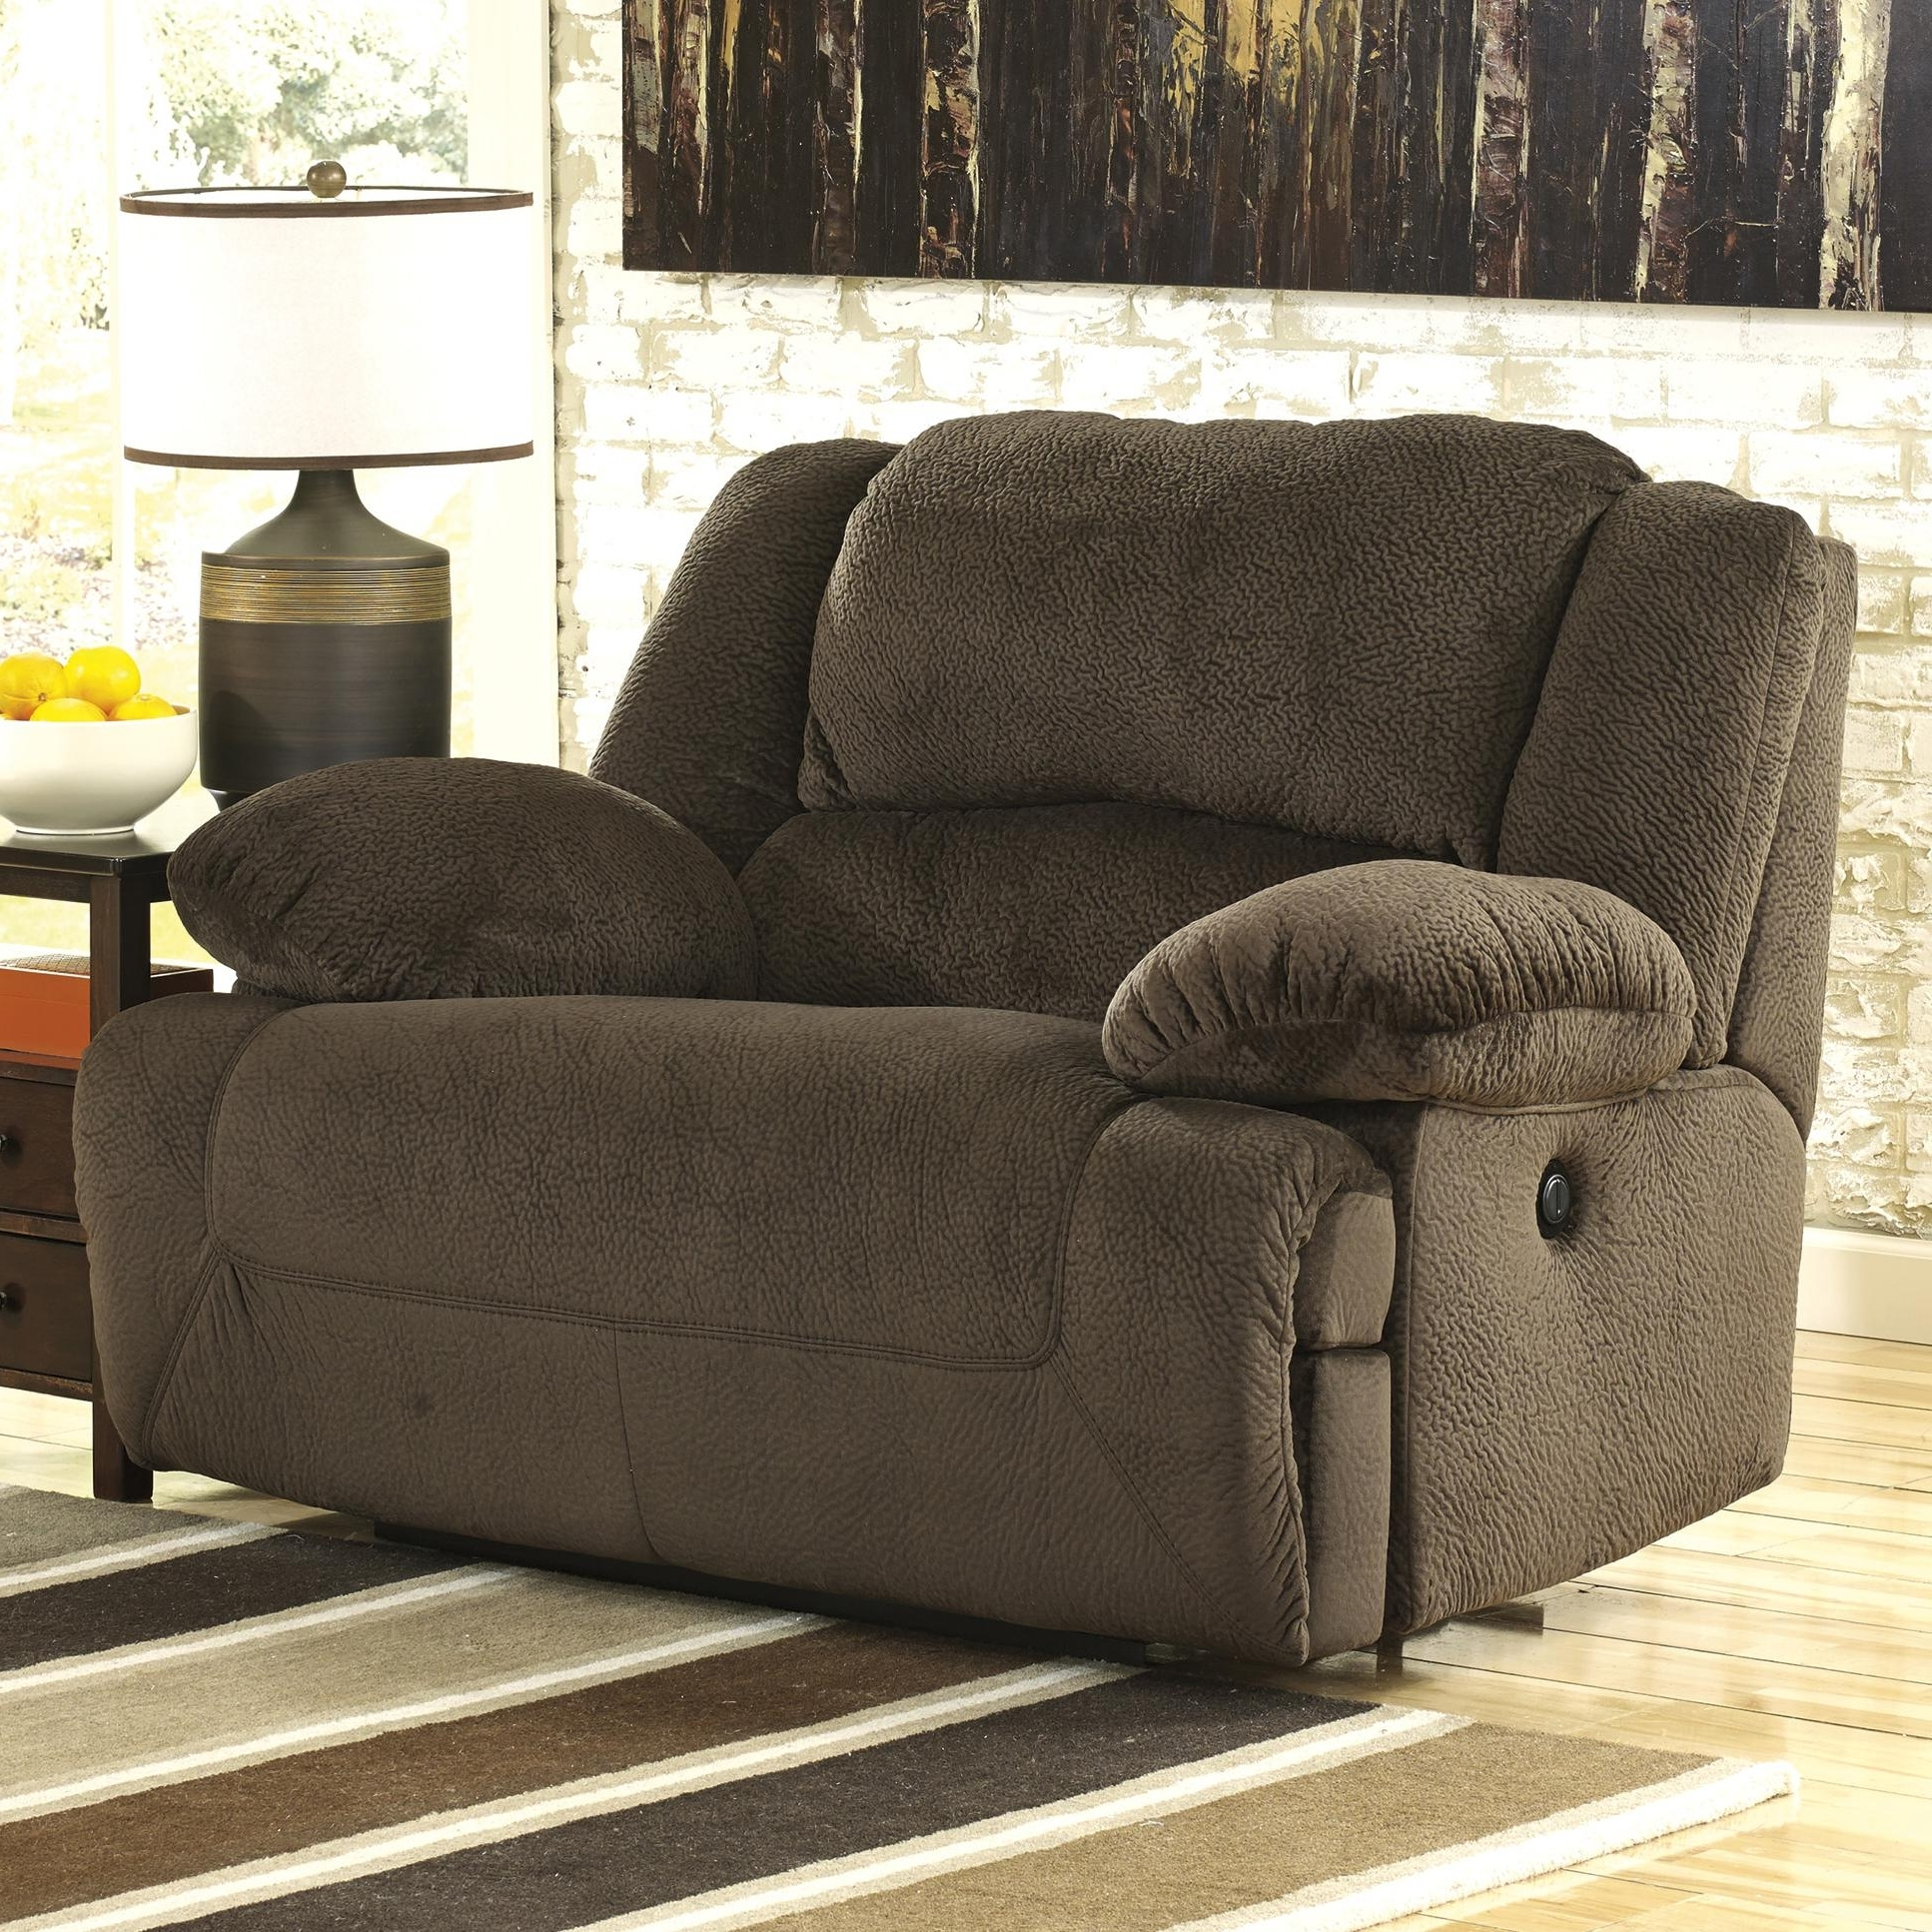 Most Recent Wide Sofa Chairs Intended For Signature Designashley Toletta – Chocolate Wide Seat Power (View 7 of 20)